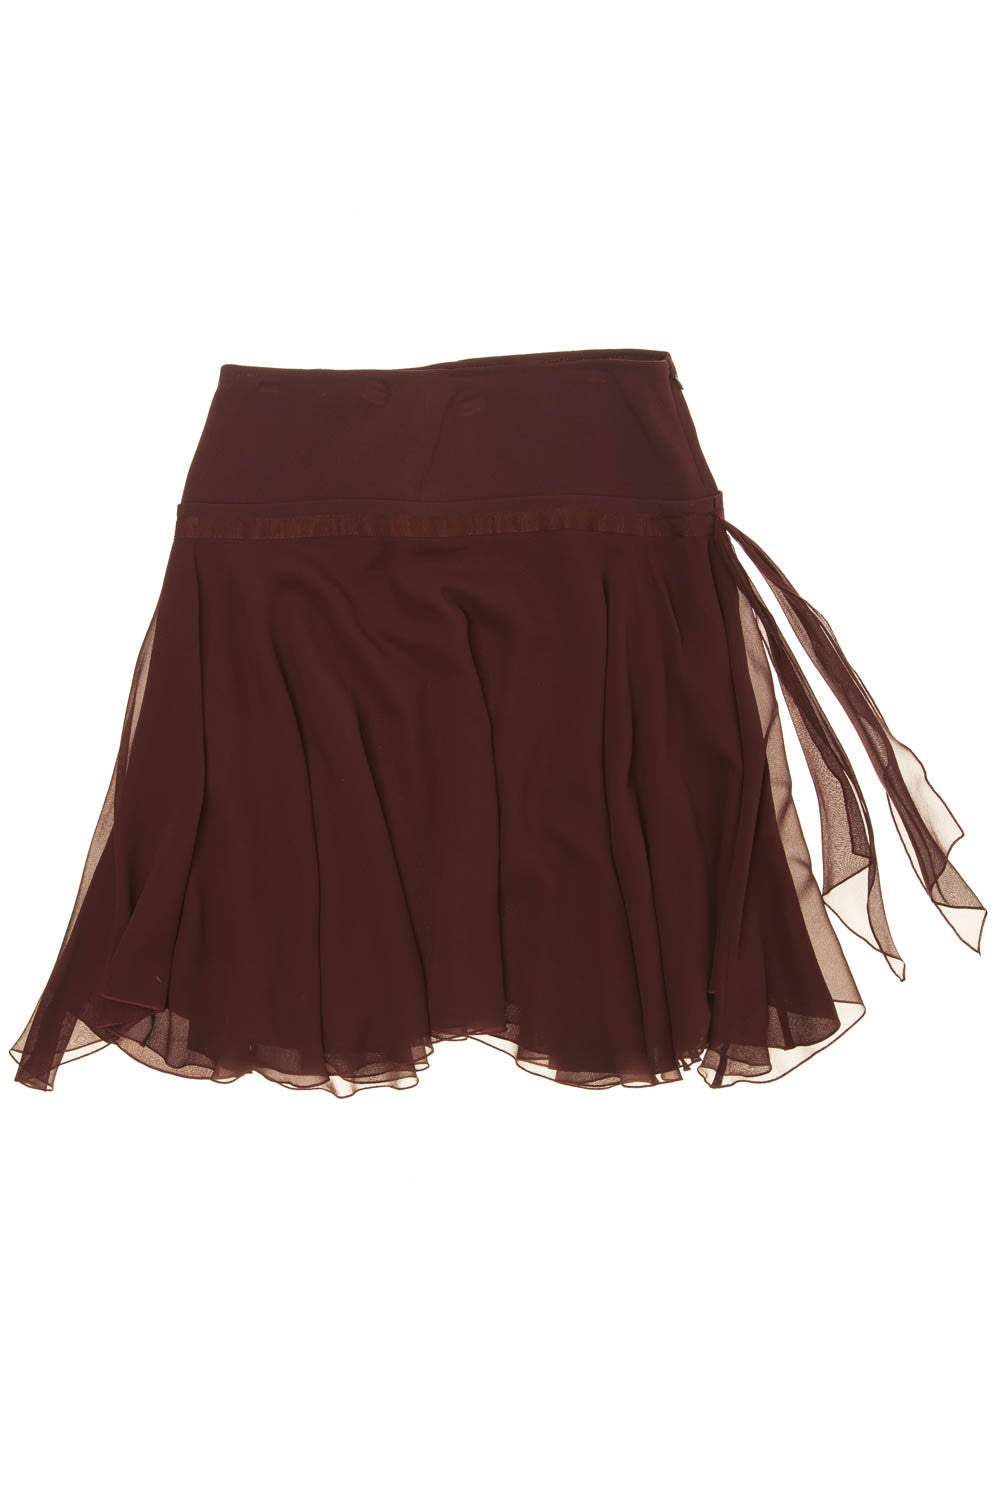 La Perla - Purple Burgundy Skirt - IT 42